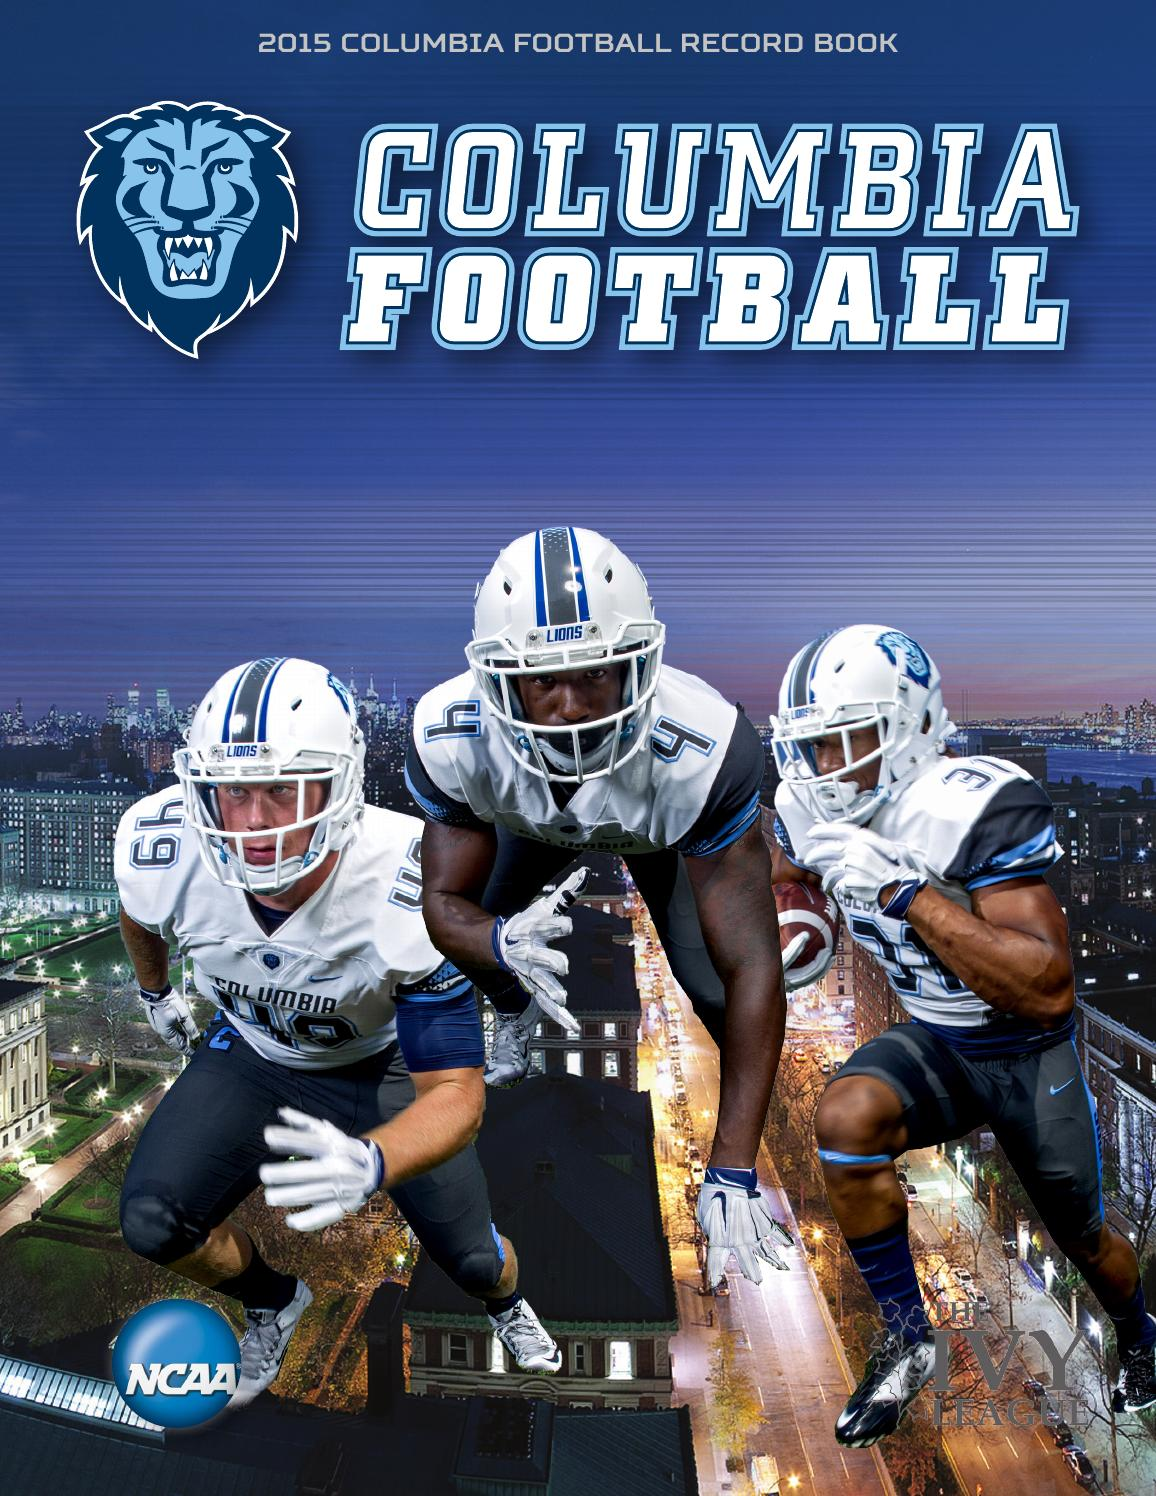 8af915a0d 2015 Columbia Football Record Book by Columbia University - issuu